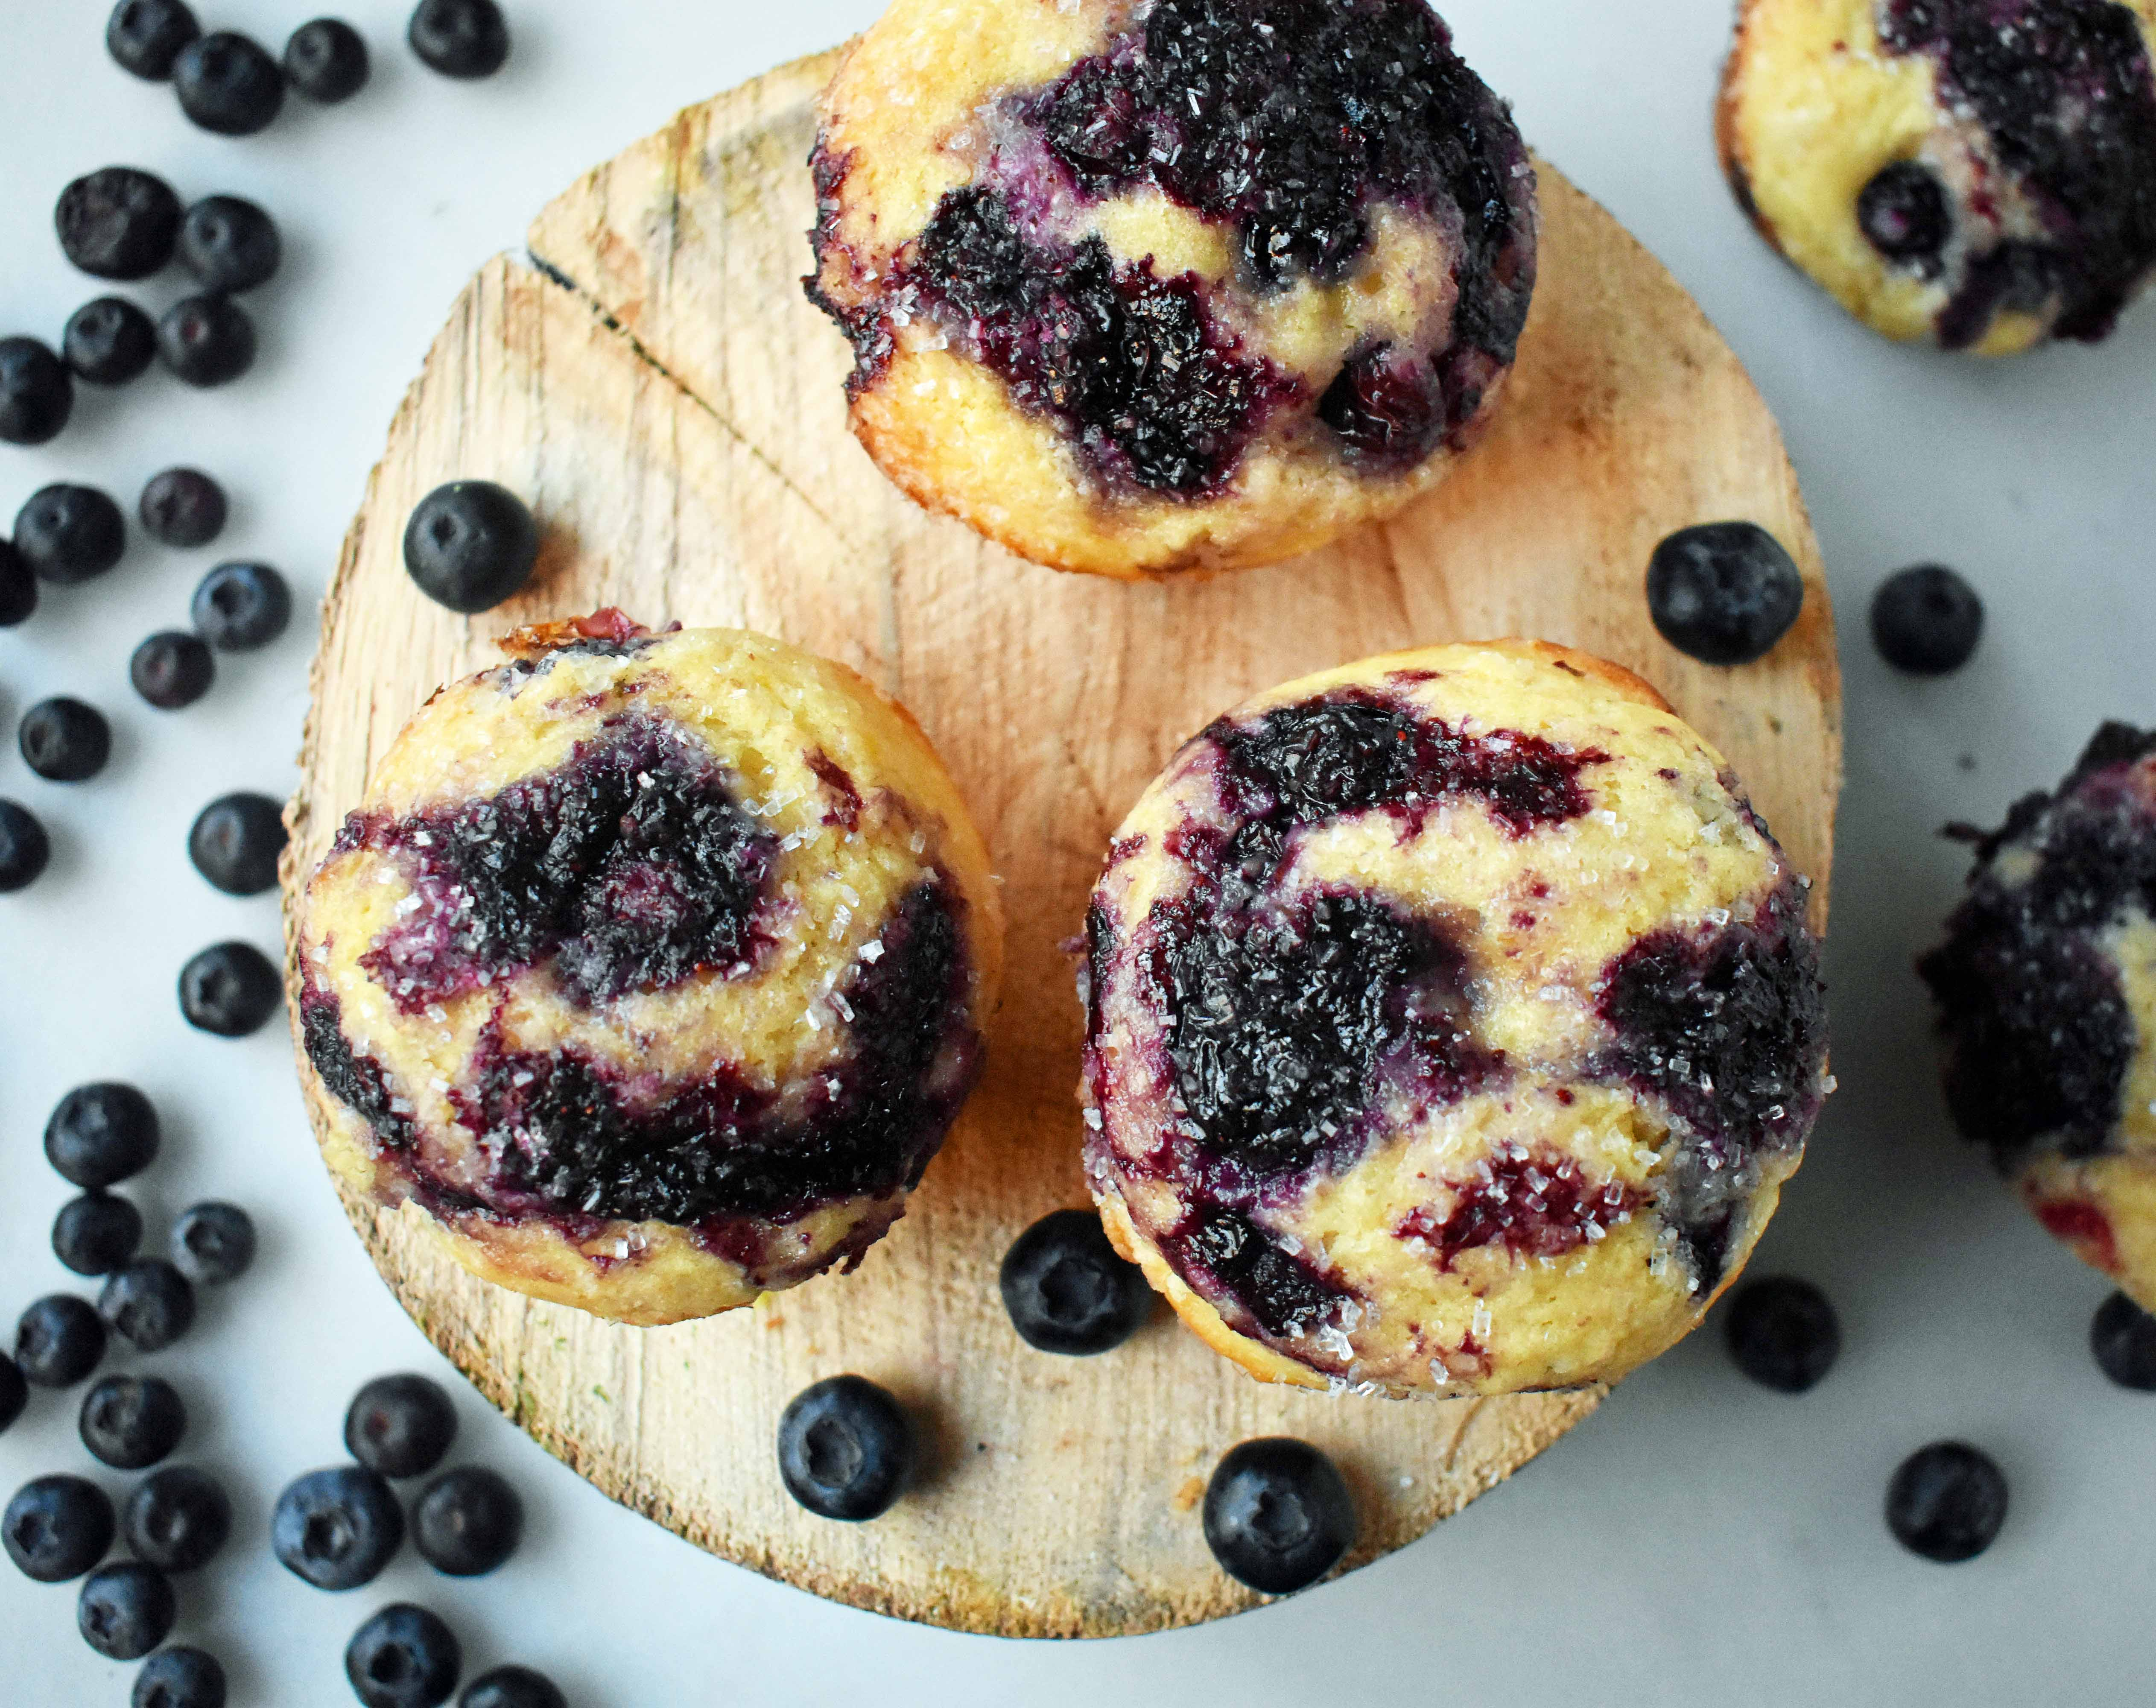 Best Blueberry Muffins by Modern Honey. The perfect blueberry muffin recipe using both butter and oil, buttermilk, and fresh blueberries.